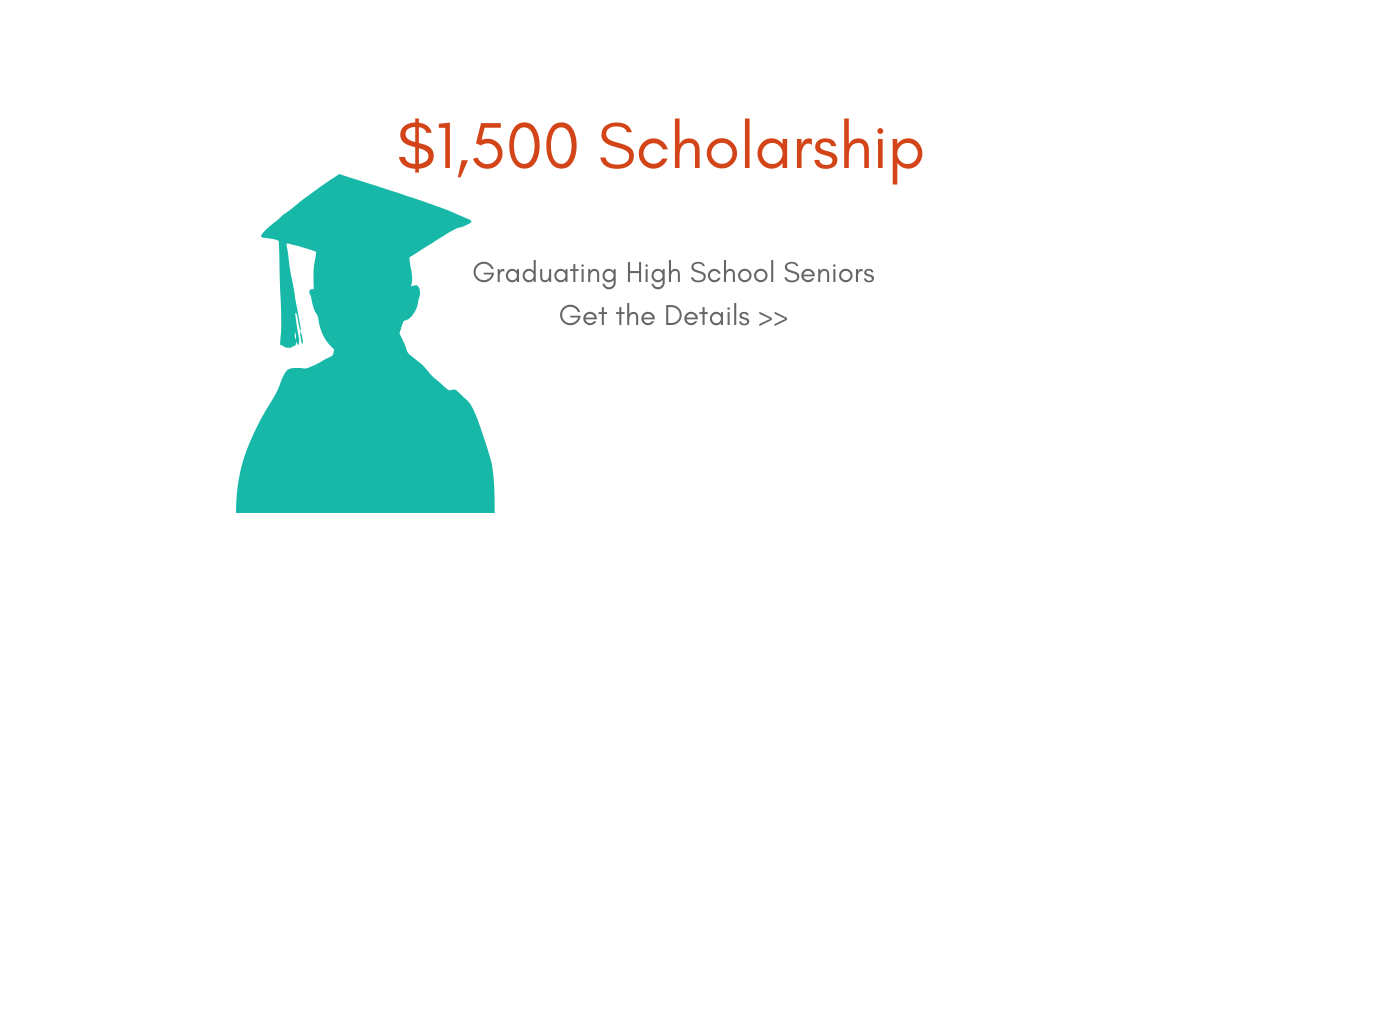 2019 scholarship contest for graduation high school seniors click